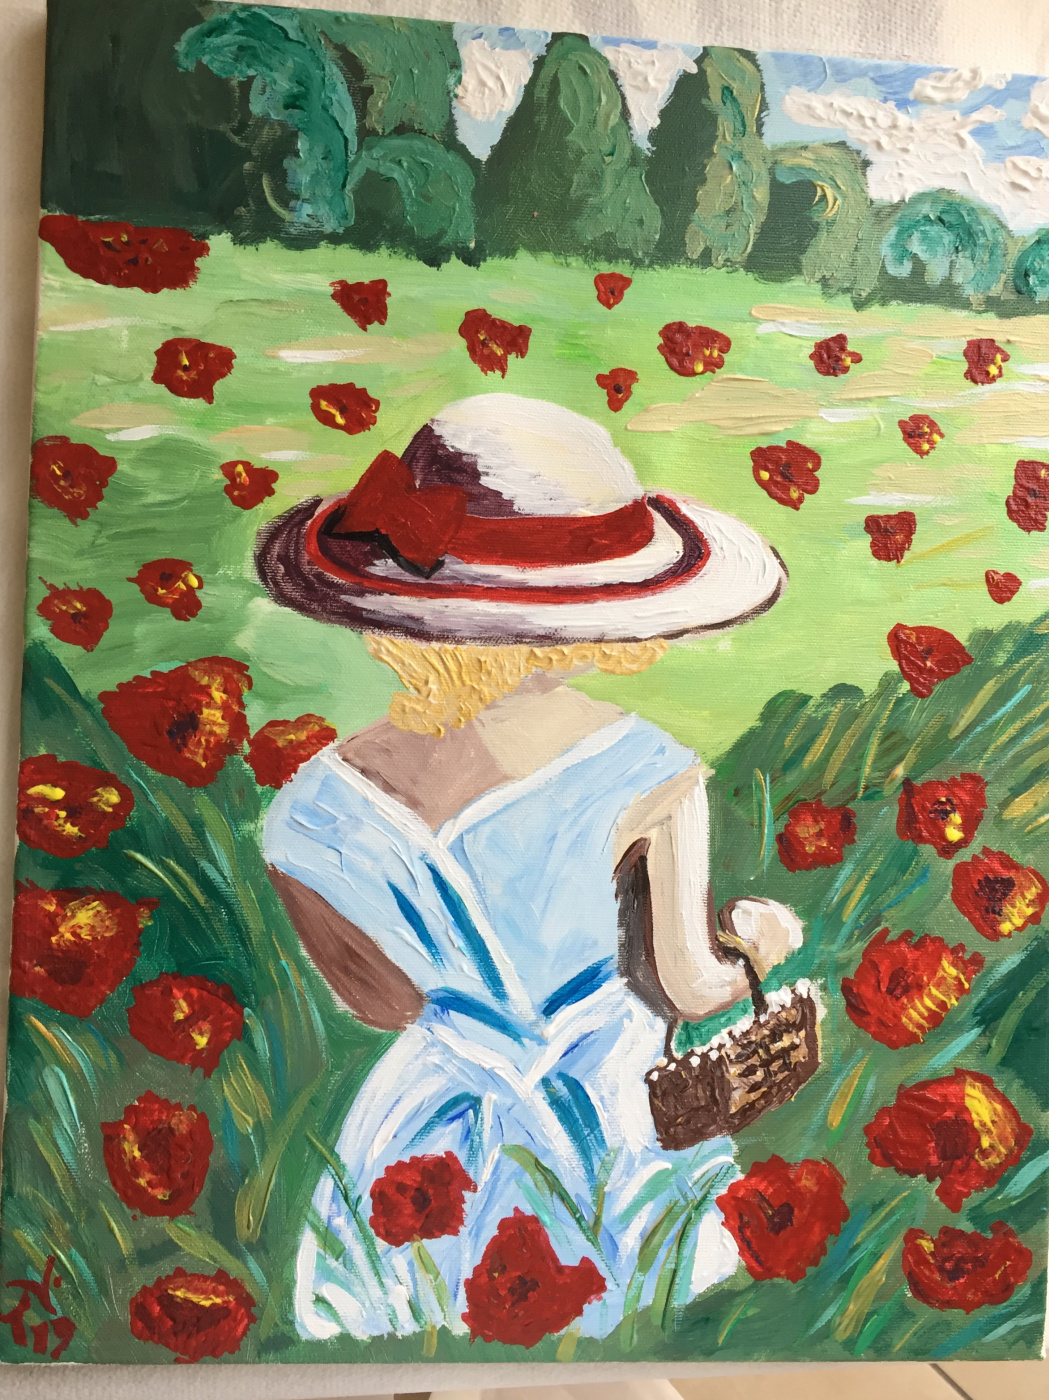 (no name). Girl in poppies